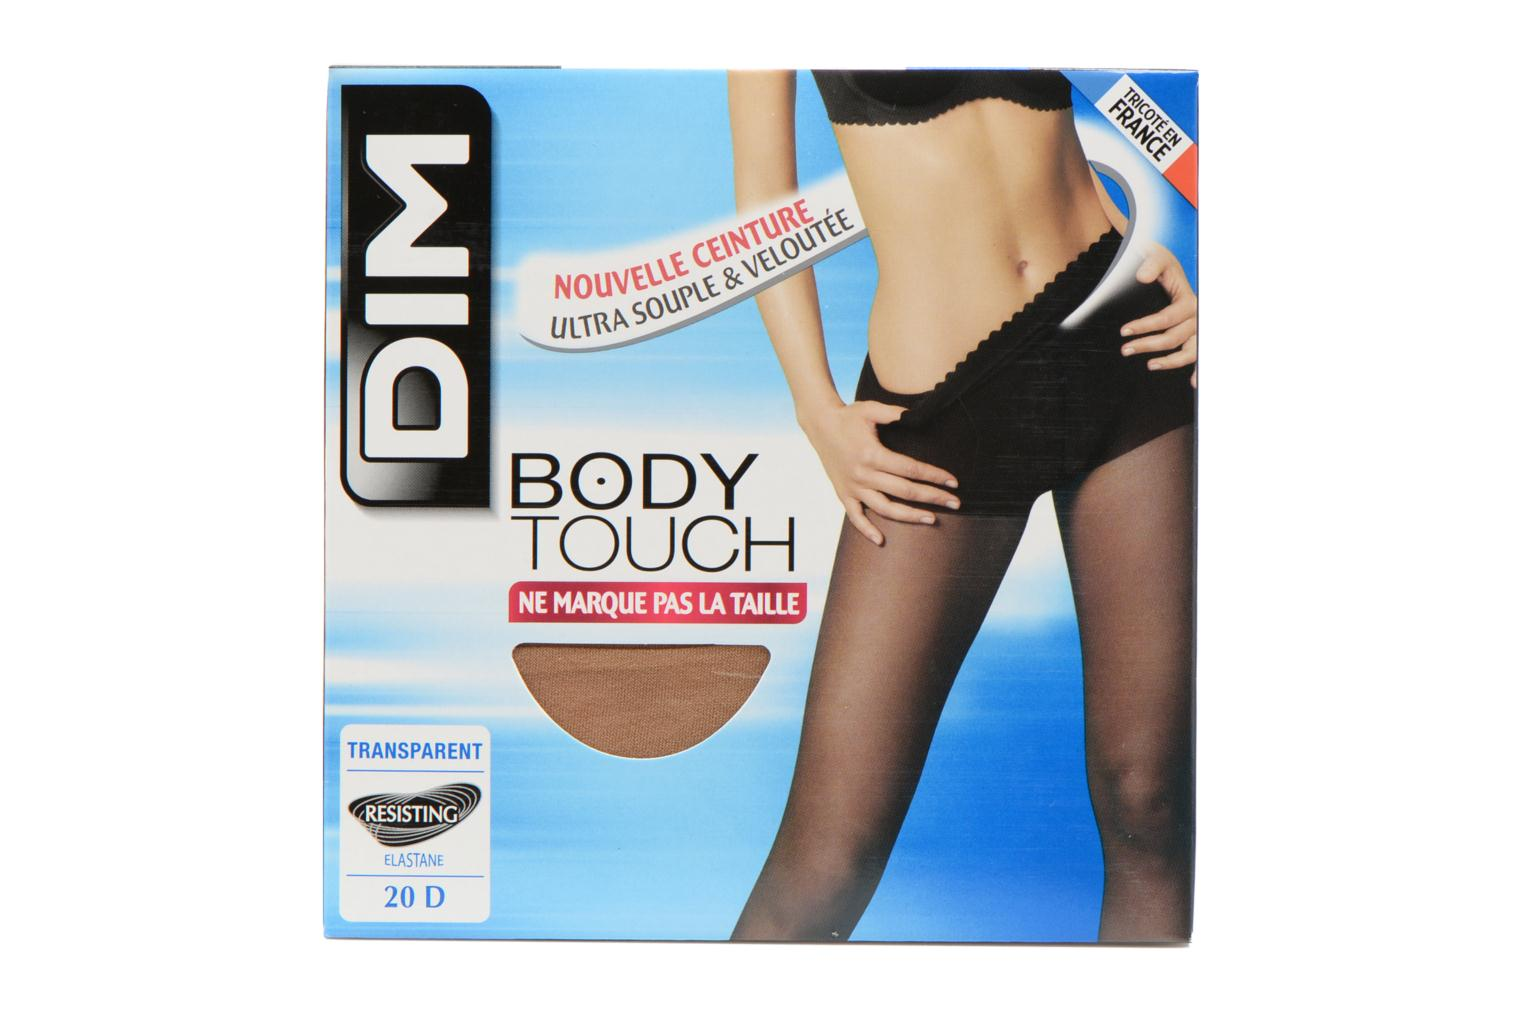 Collant BODYTOUCH VOILE PEAU DOREE